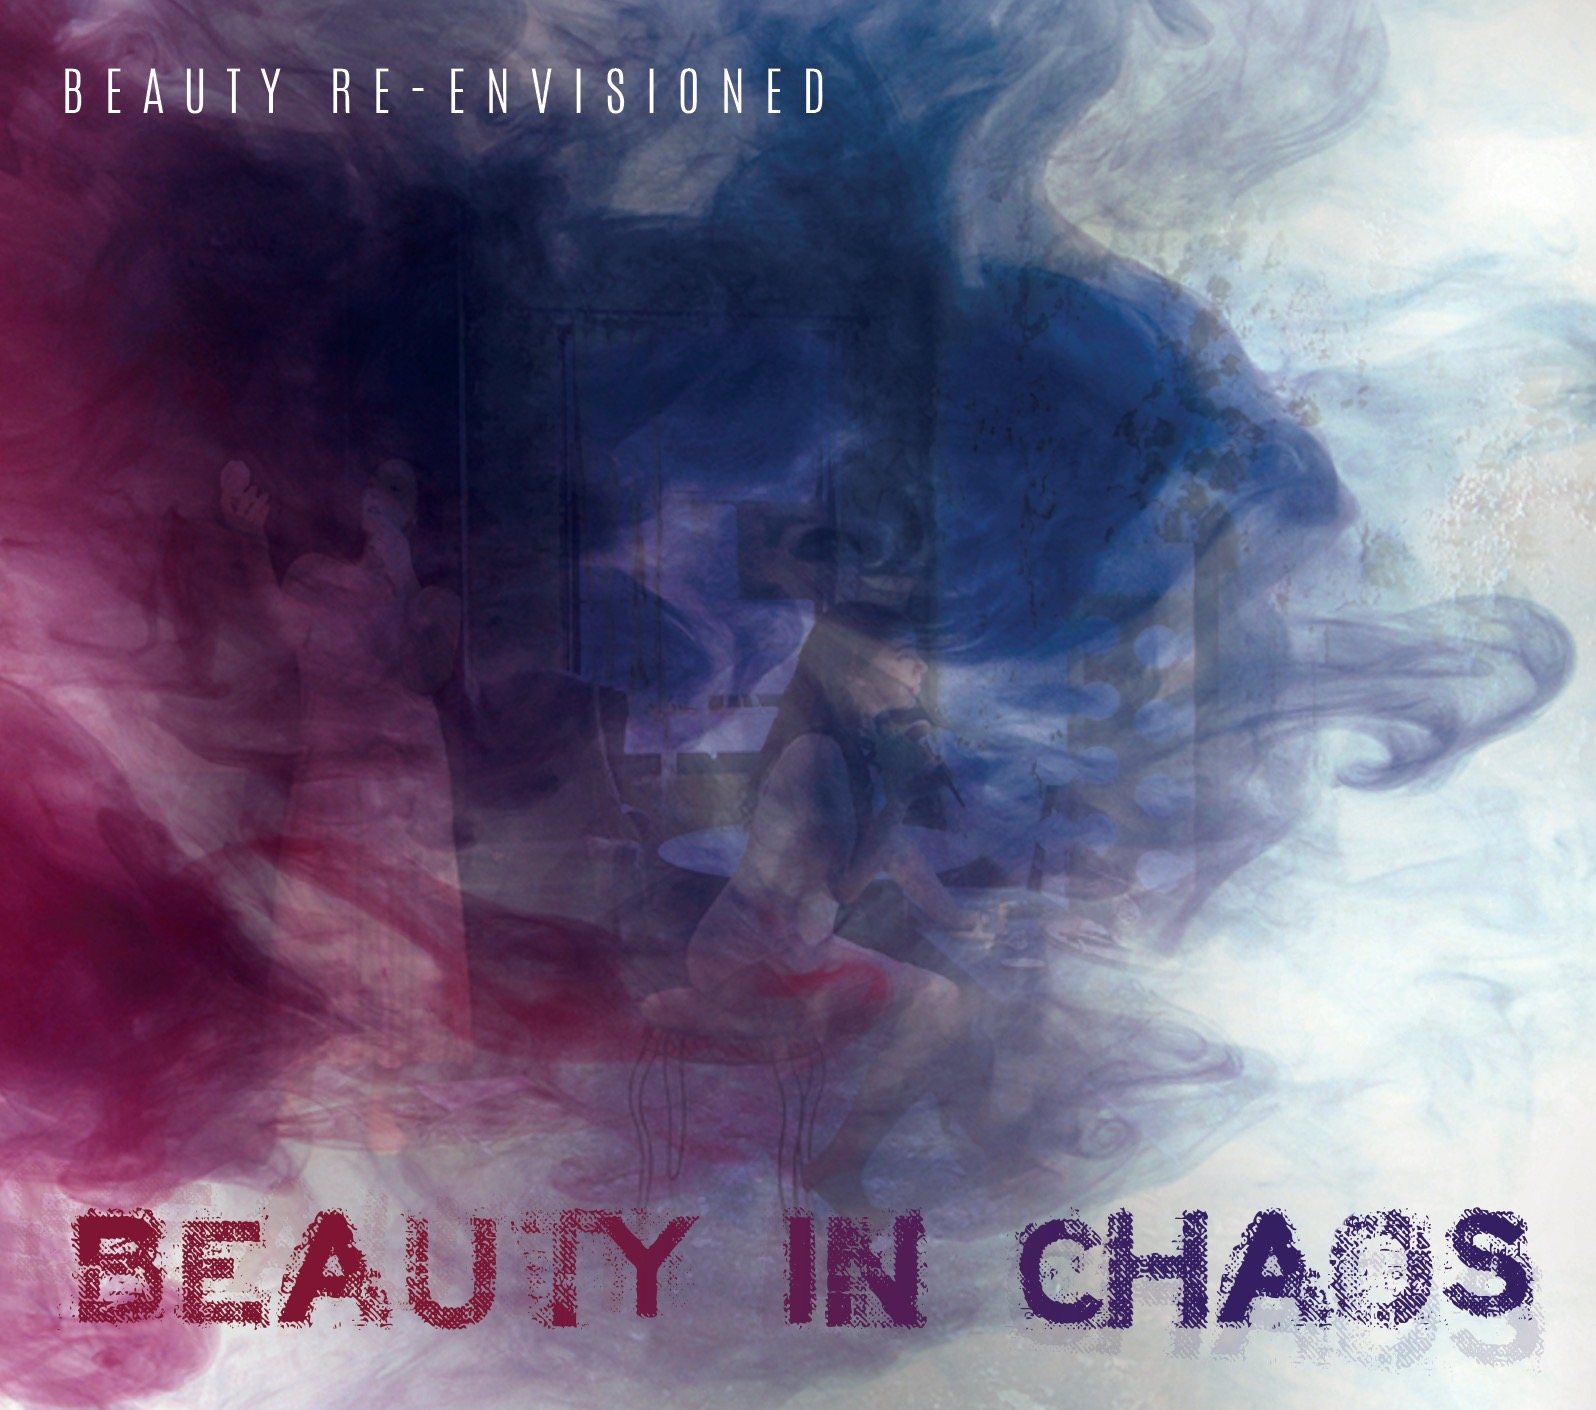 - 'beauty re-envisioned' release date 6/21/19